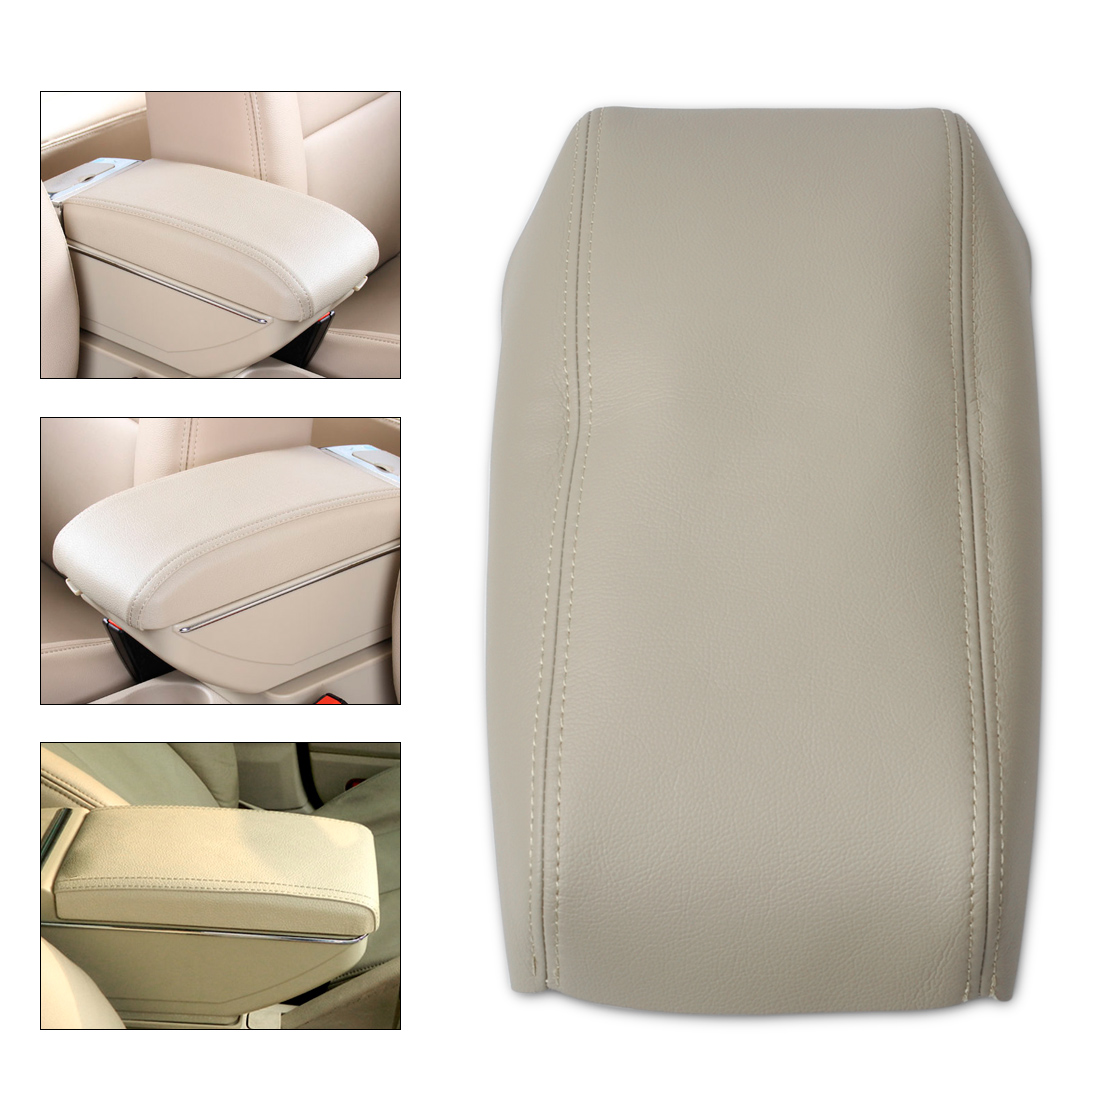 DWCX Beige Leather Front Console Lid Armrest Cover Waterproof Perfection for Honda Accord 1998 1999 2000 2001 2002 DIY